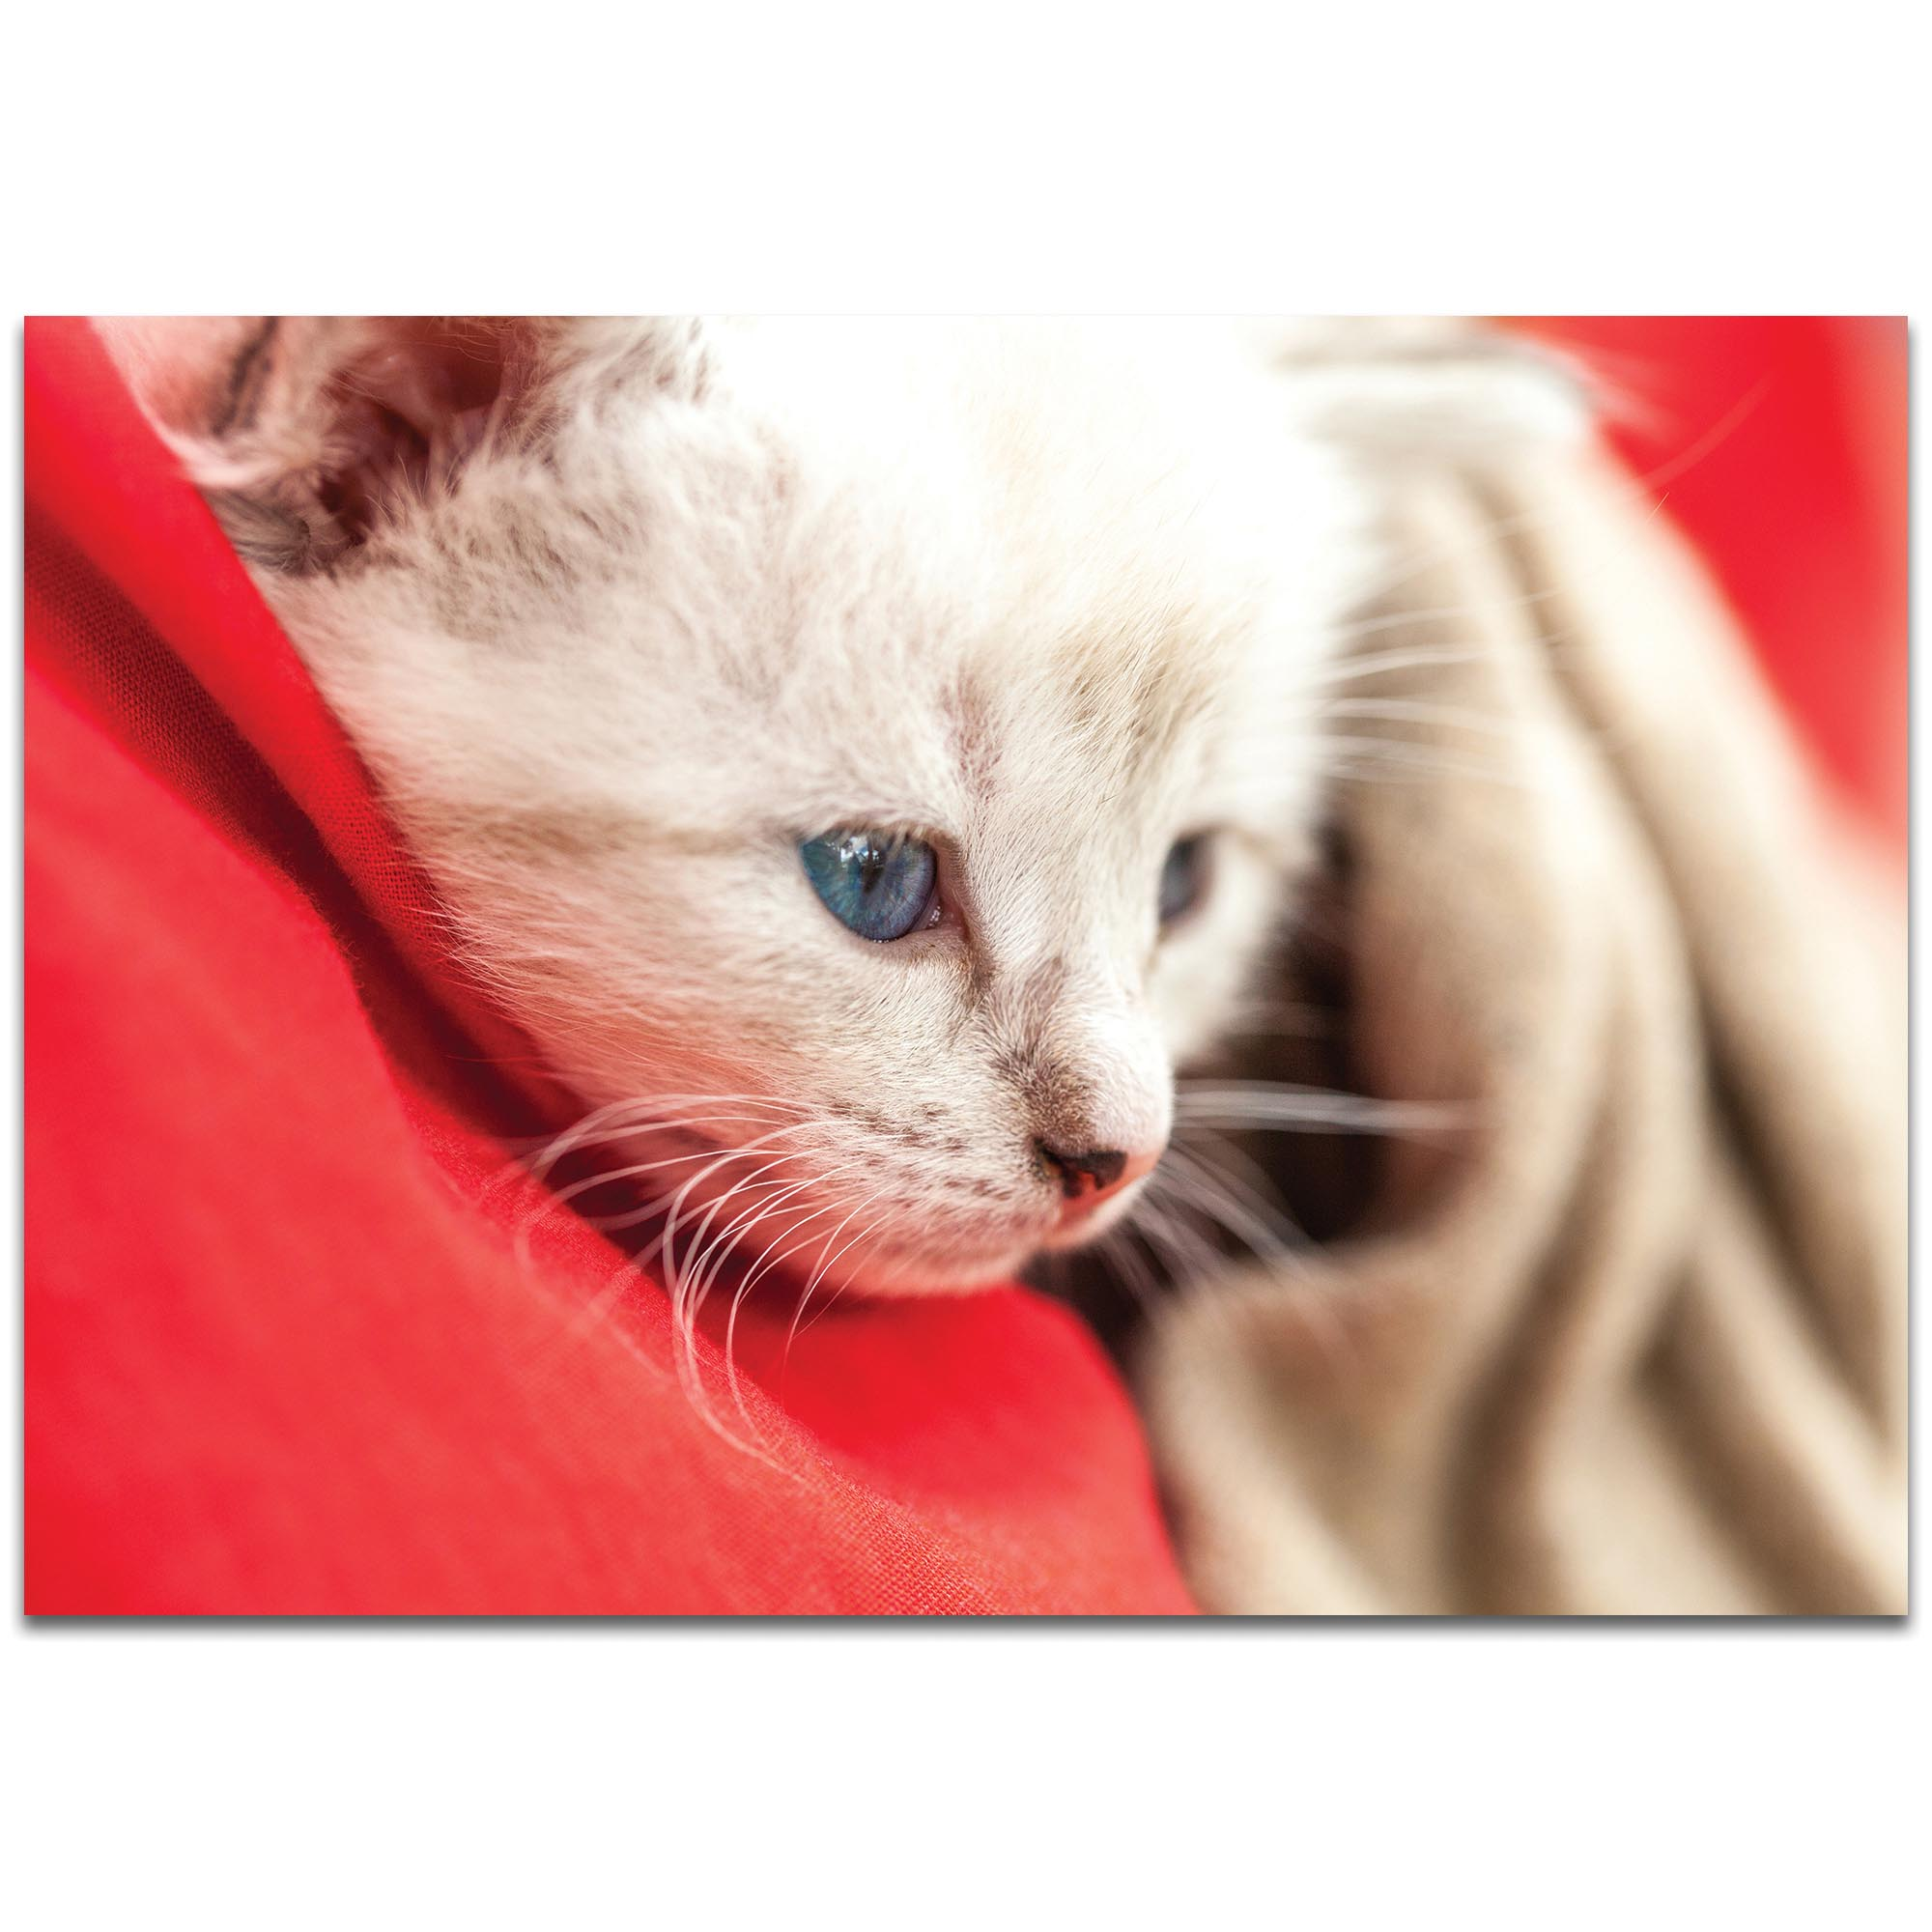 Casual Wall Art 'Bundled Kitten' - Wildlife Decor on Metal or Plexiglass